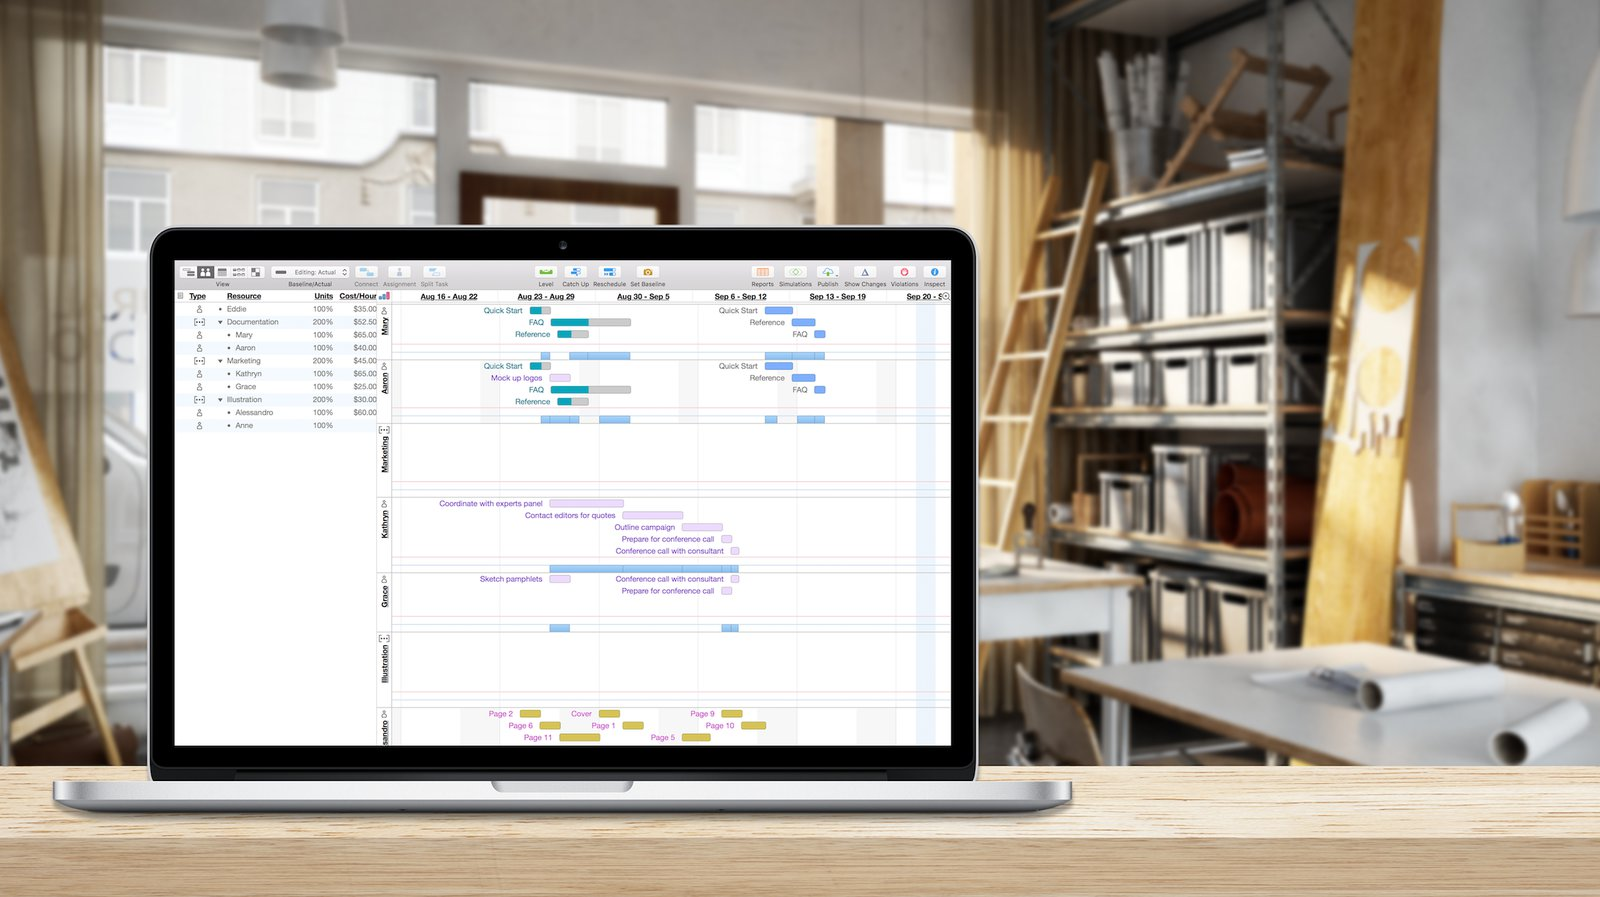 Omniplan project management for mac iphone and ipad the omni omniplan 3 nvjuhfo Gallery